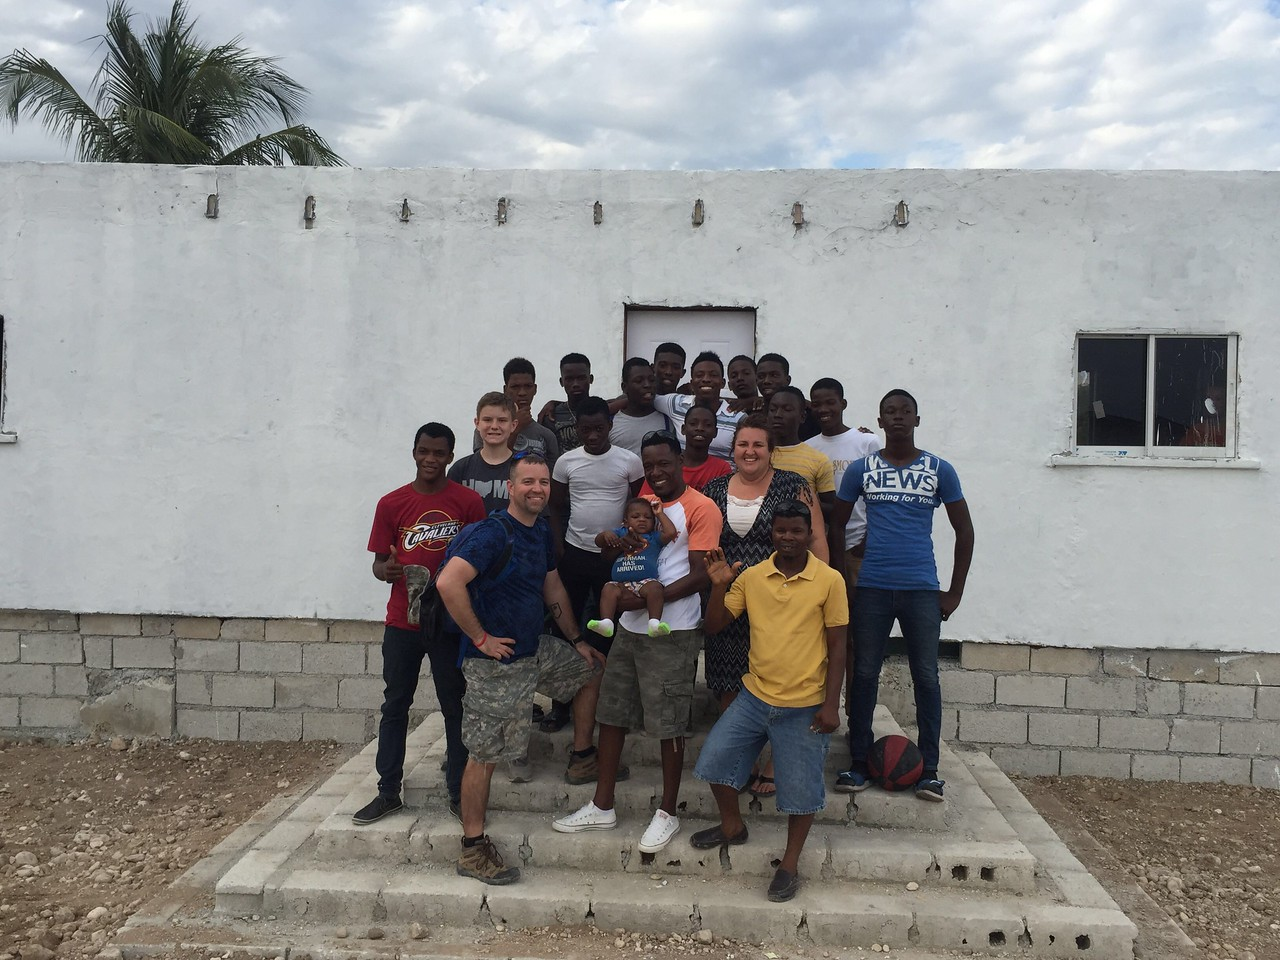 Sunday, Day #7<br /> Group photo after the big reveal of the office.